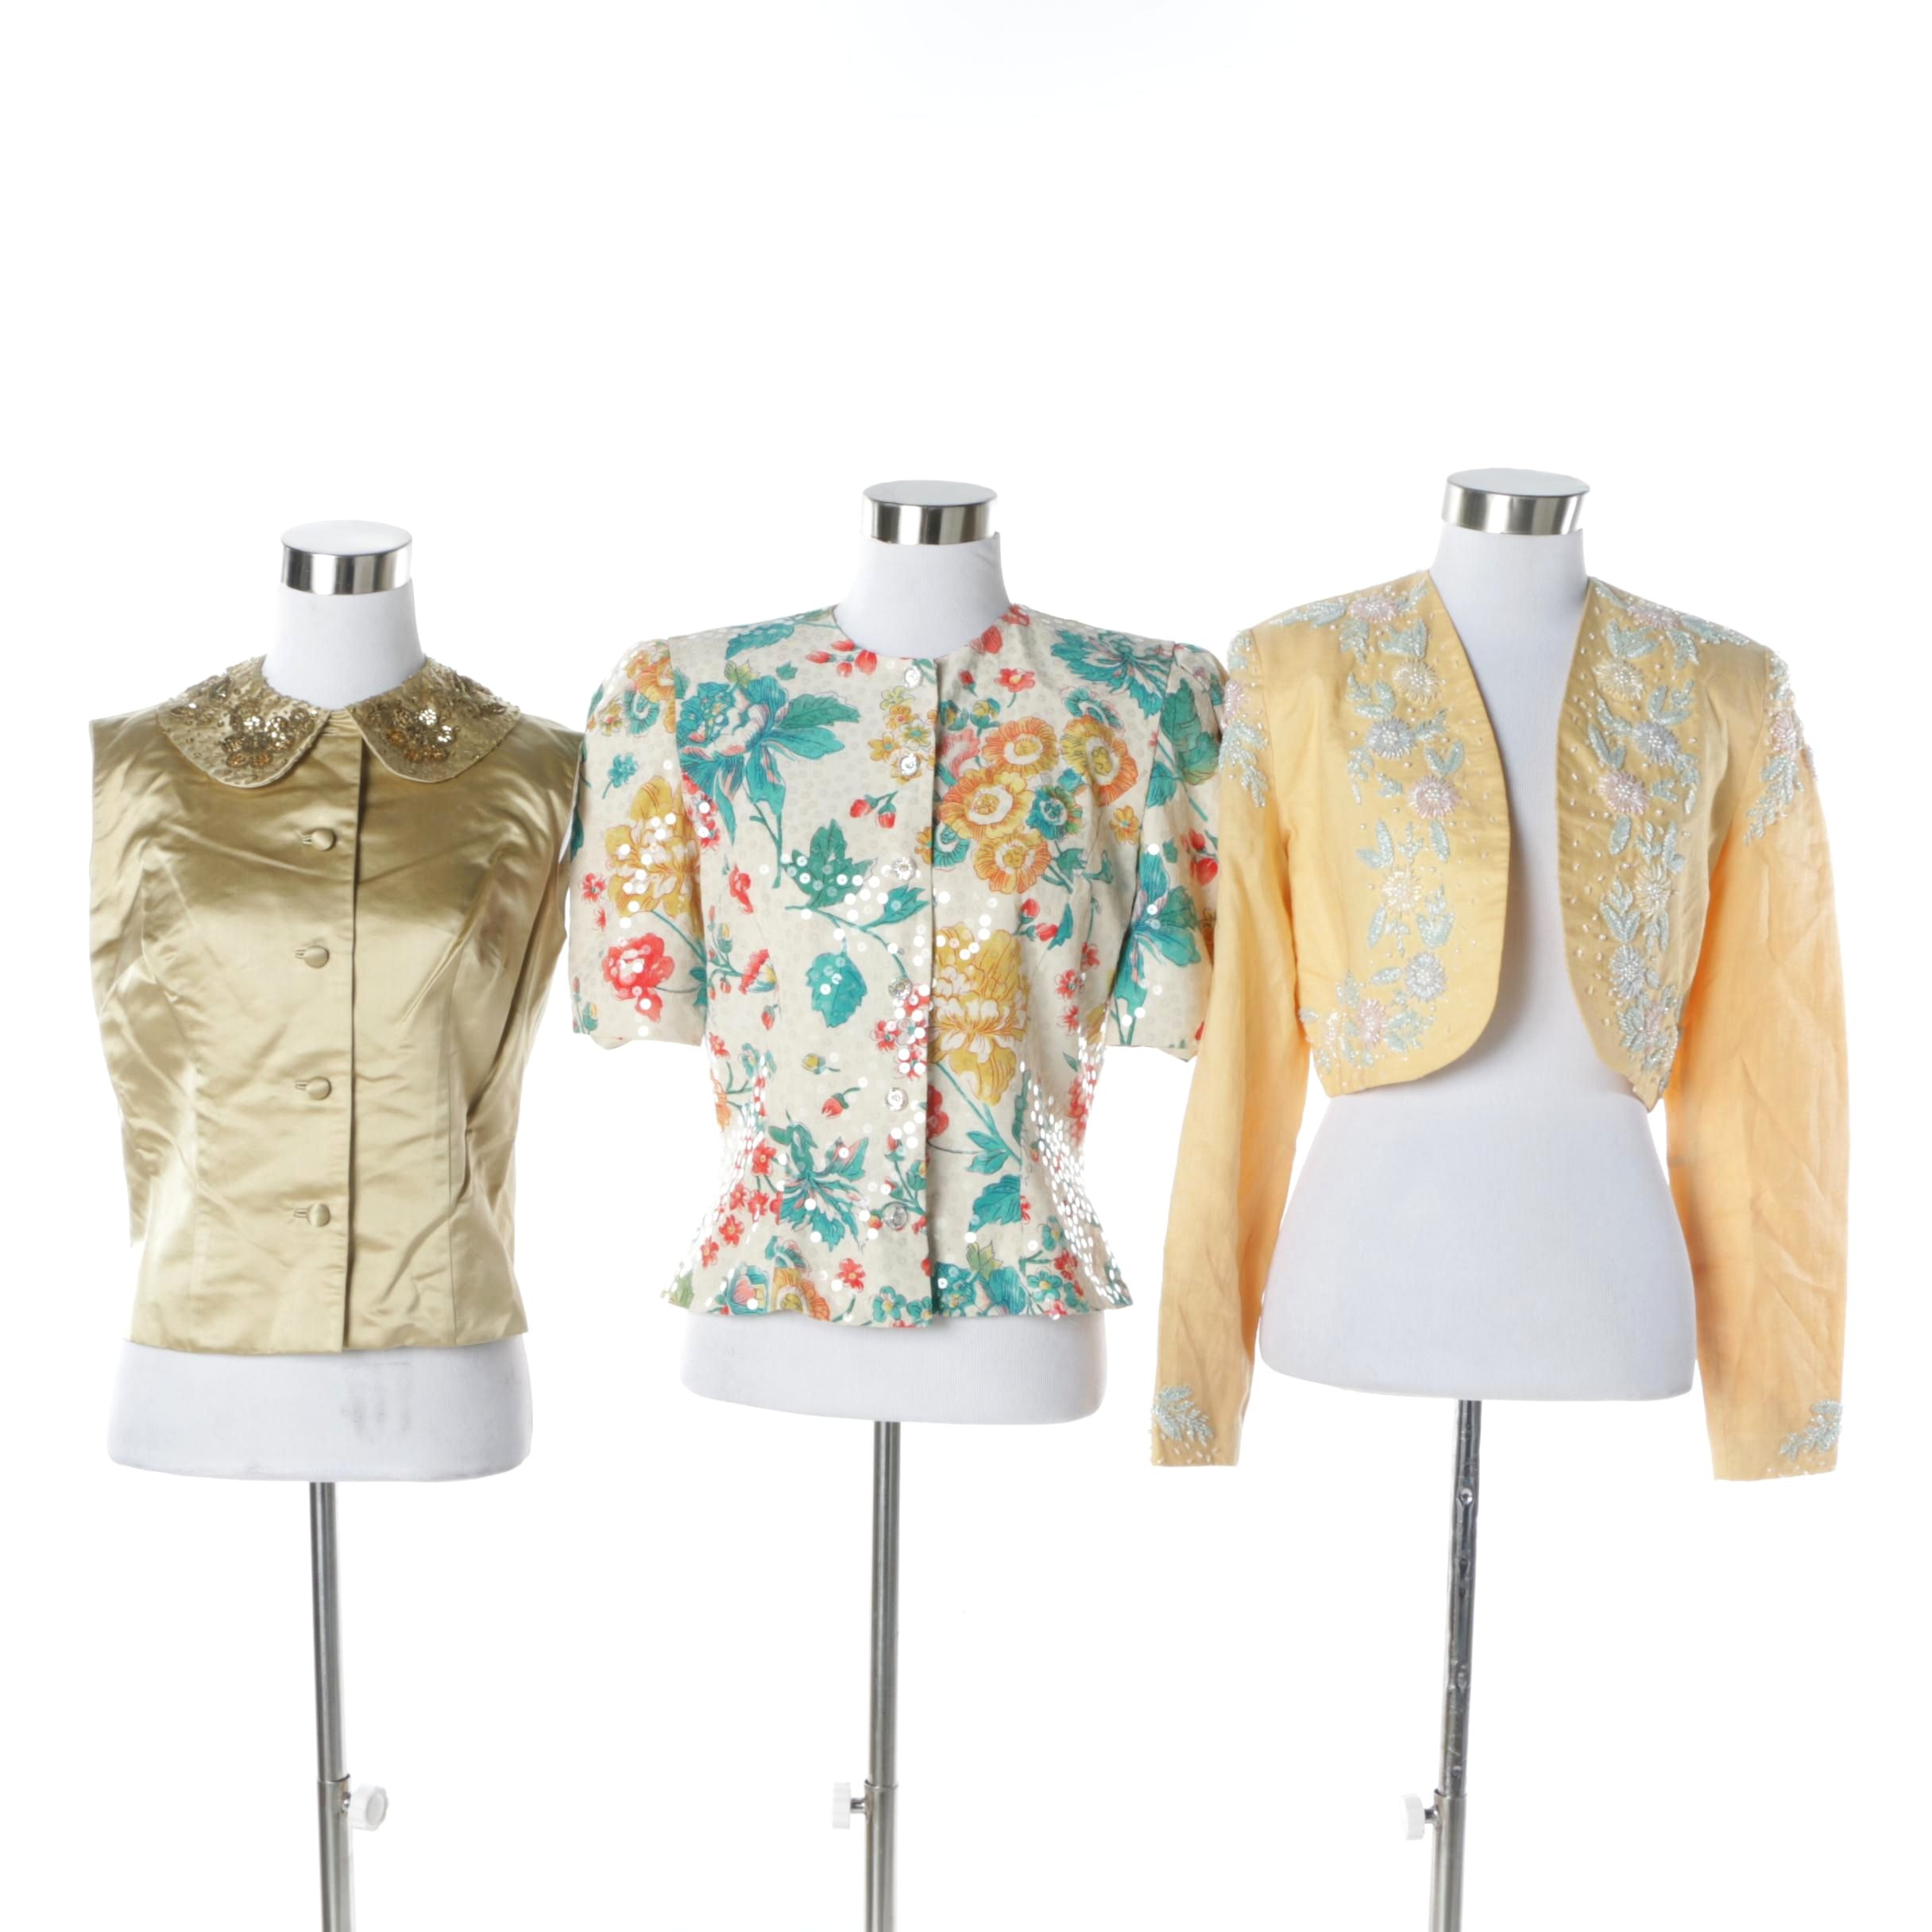 Women's Vintage Embellished Button-Ups and Blazers